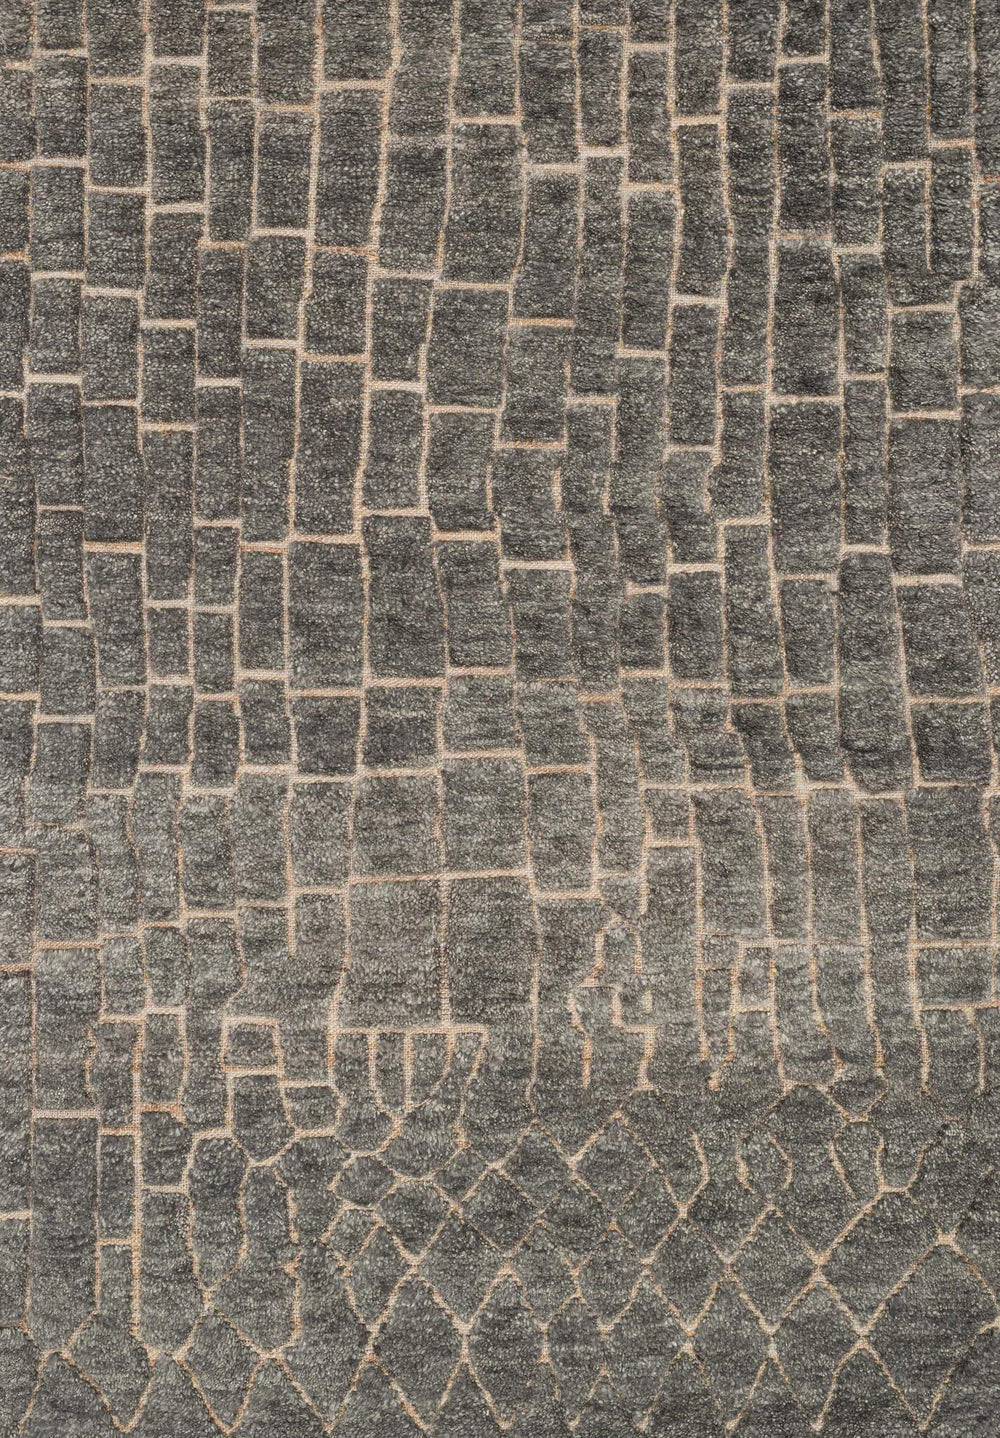 Loloi Rug Tanzania/Hemingway TN-03 Slate - Rugs1 - High Fashion Home